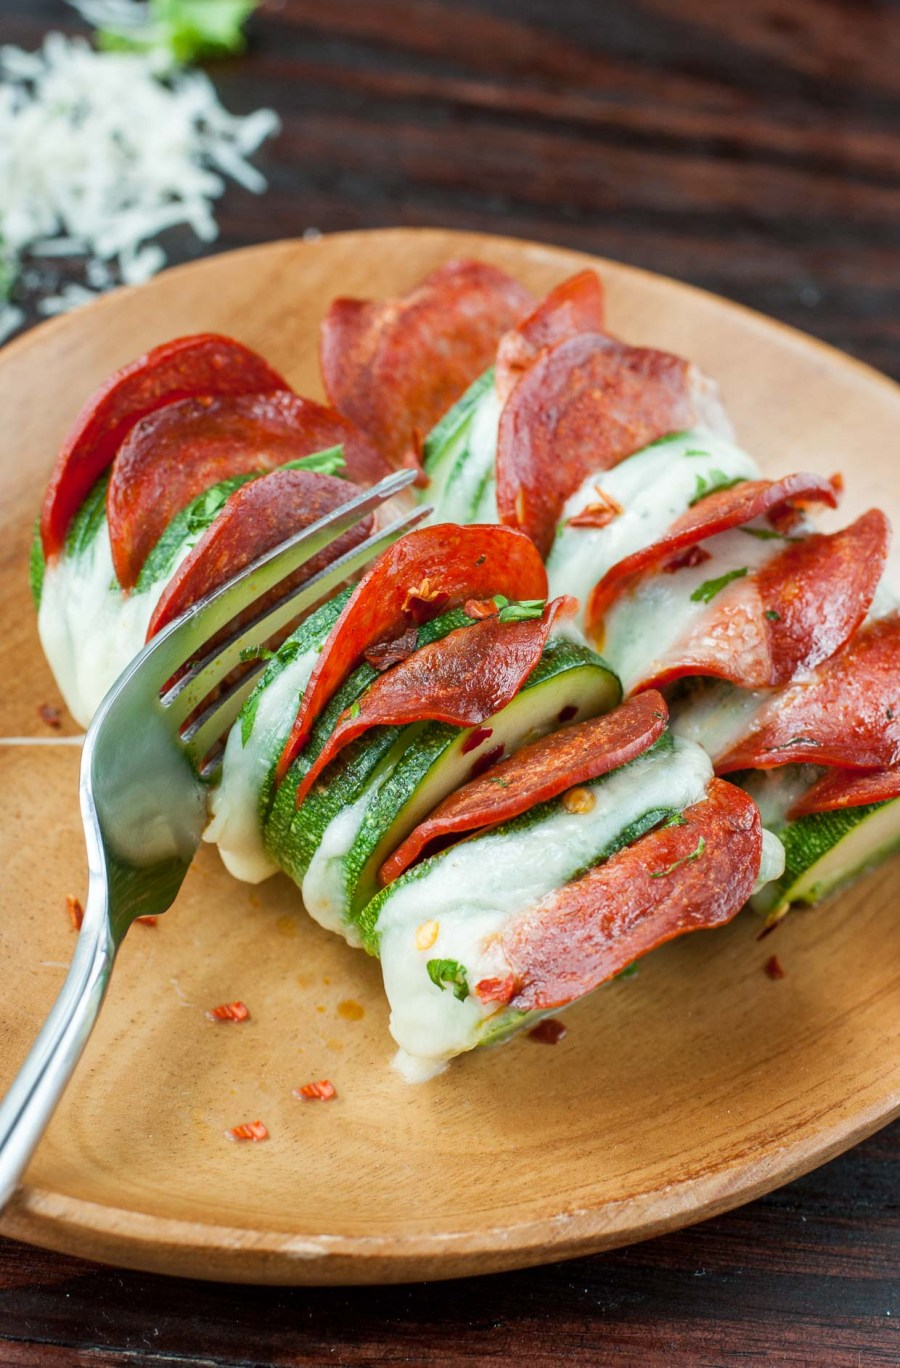 Your pizza dreams have come true with these Cheesy Hasselback Zucchini Pizzas! This tasty foil-baked side is guaranteed to impress and SO easy to make!